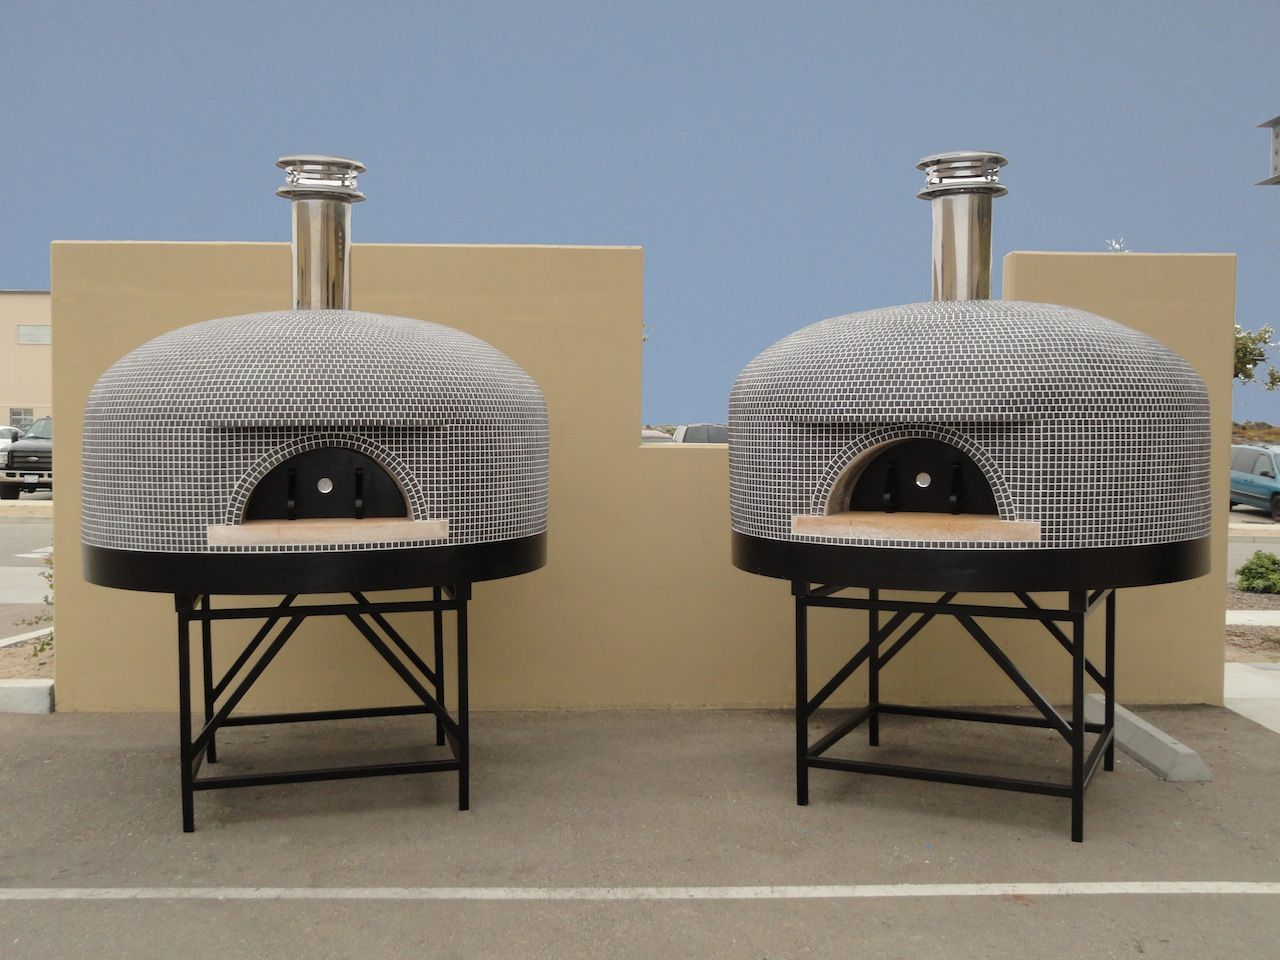 Find This Pin And More On Forno Bravo Wood Fired Pizza Ovens By Fornobravo.